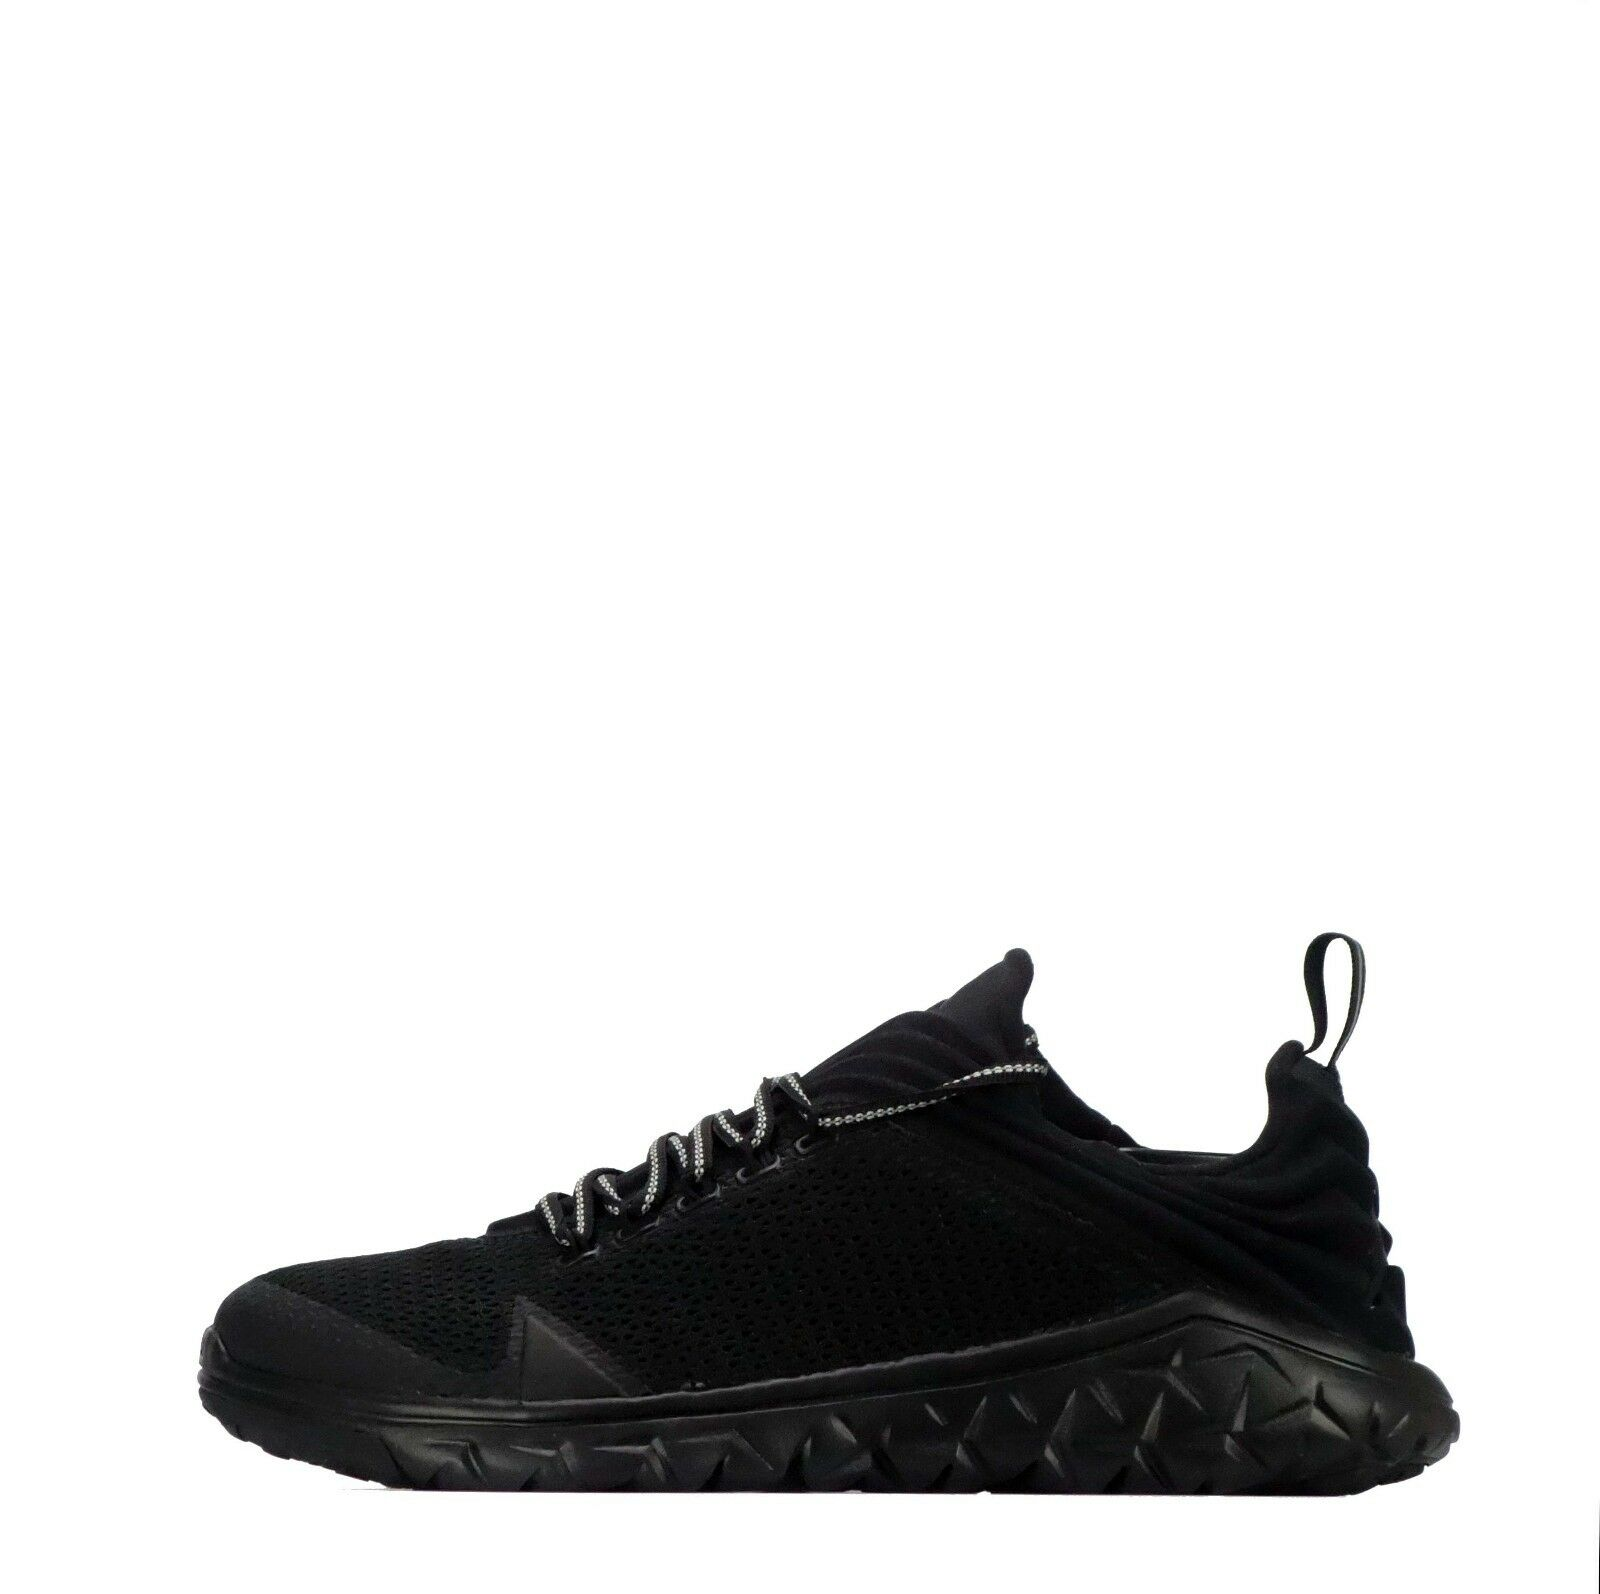 Nike Jordan Flight Flex Trainer Mens Trainers Shoes Triple Black New shoes for men and women, limited time discount